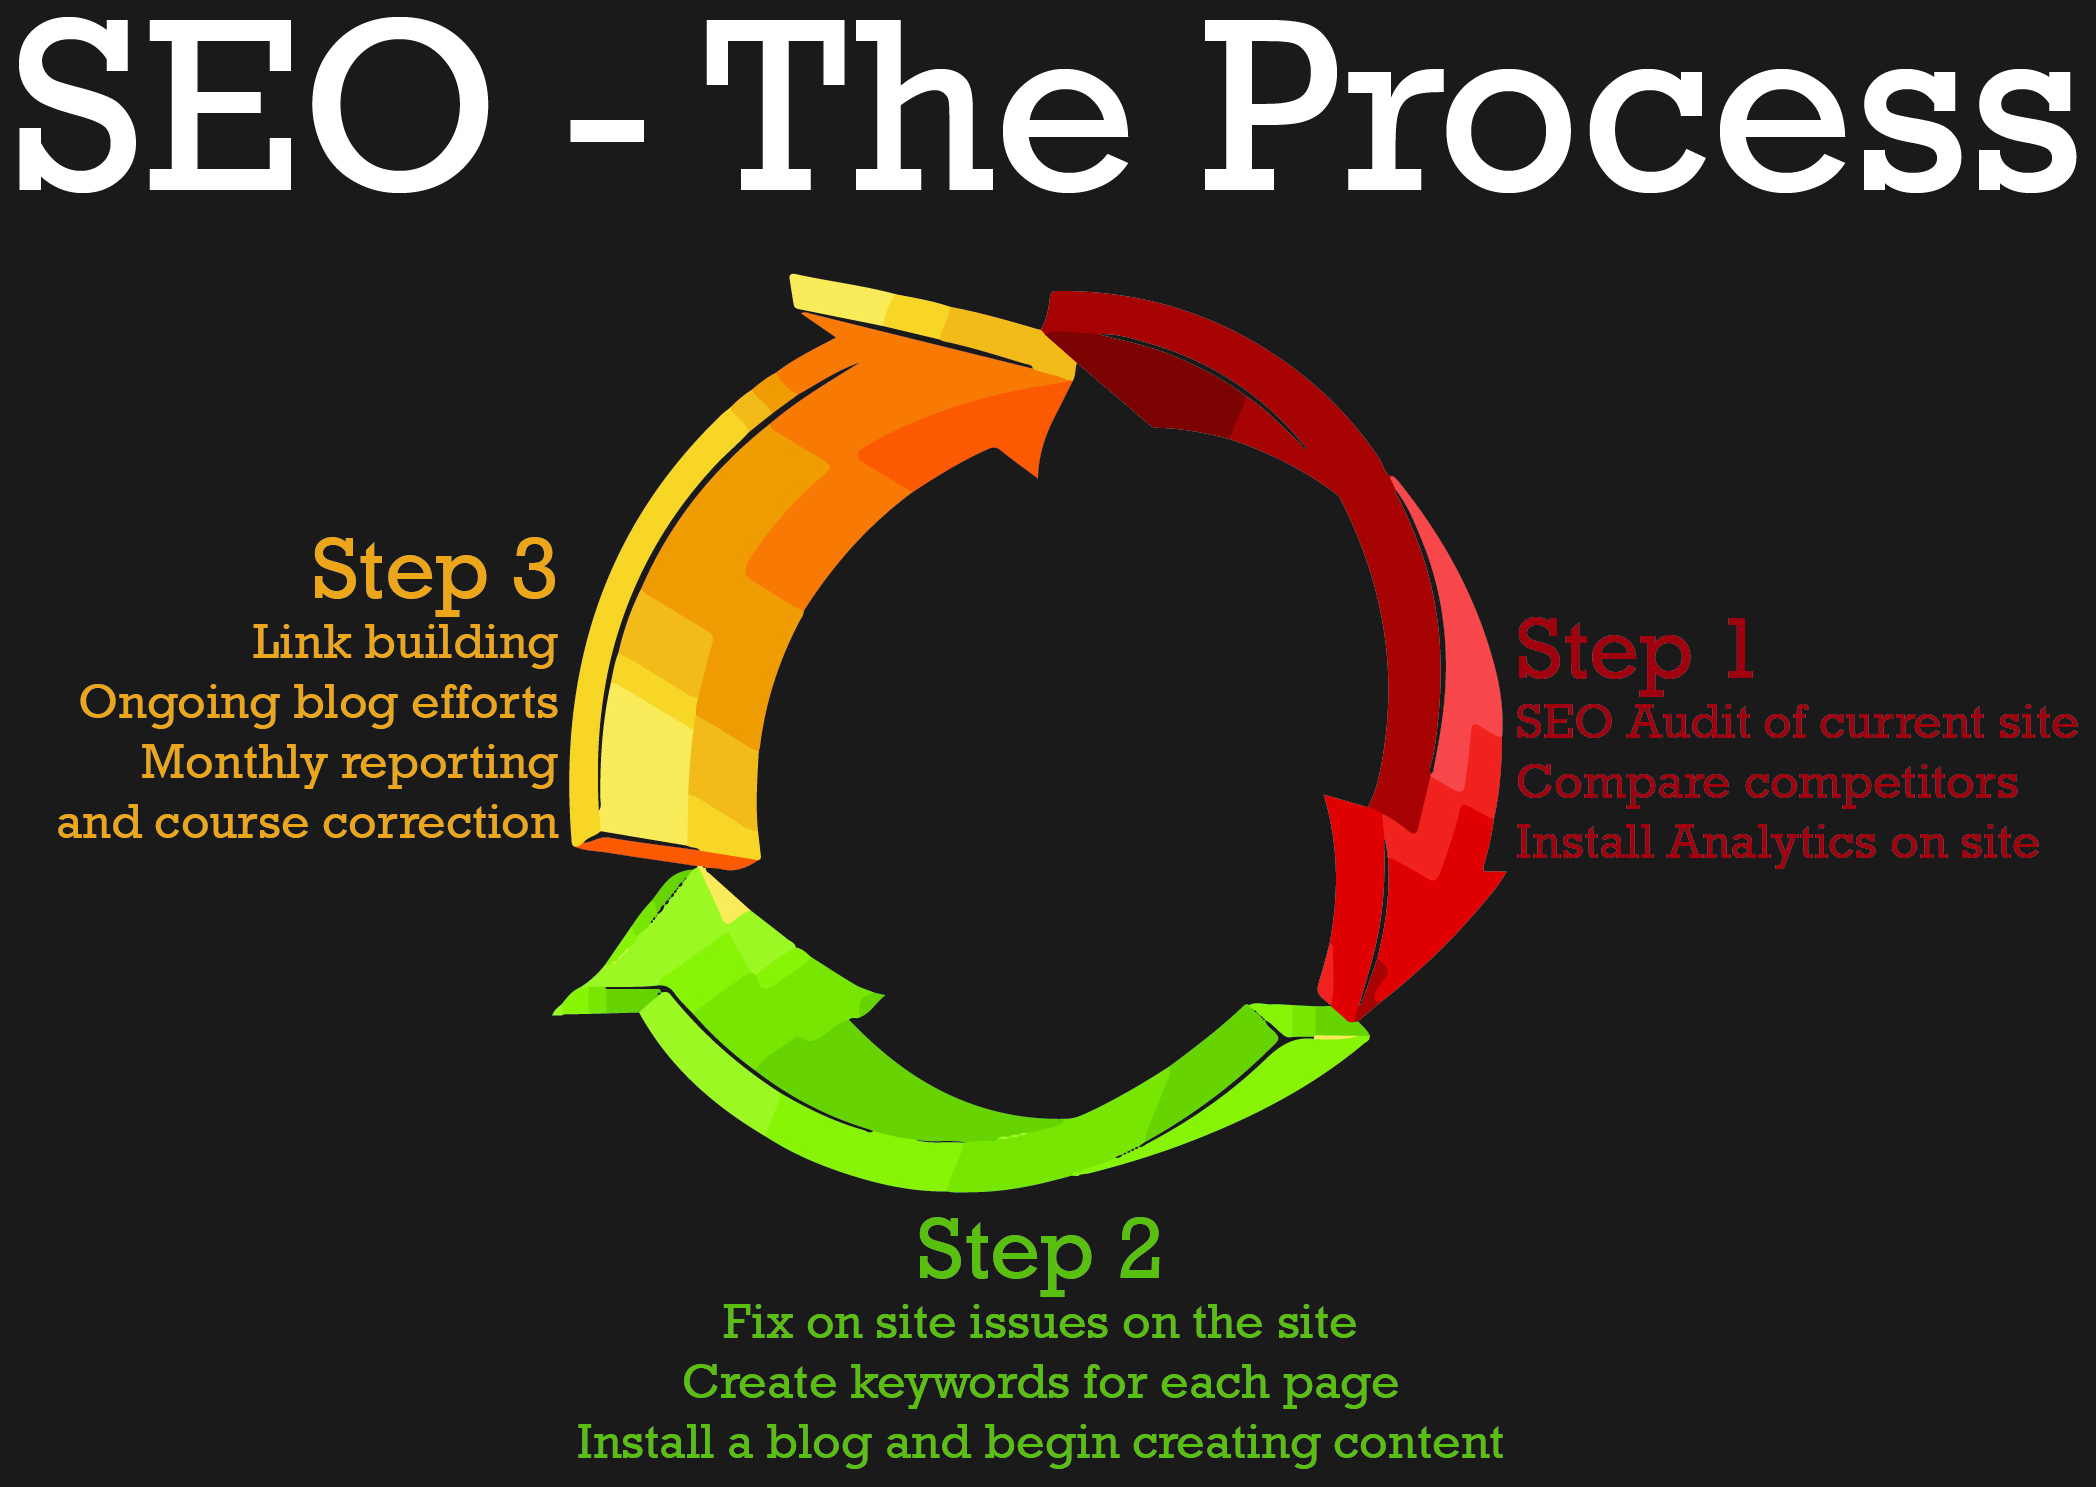 The SEO Process: Step 1 is SEO audit of current site compared to competitors, install Analytics. Step 2 is fix issues on site, create keywords for each page, install a blog and begin creating content. Step 3 is link building, ongoing blog efforts, monthly reporting and course correction.